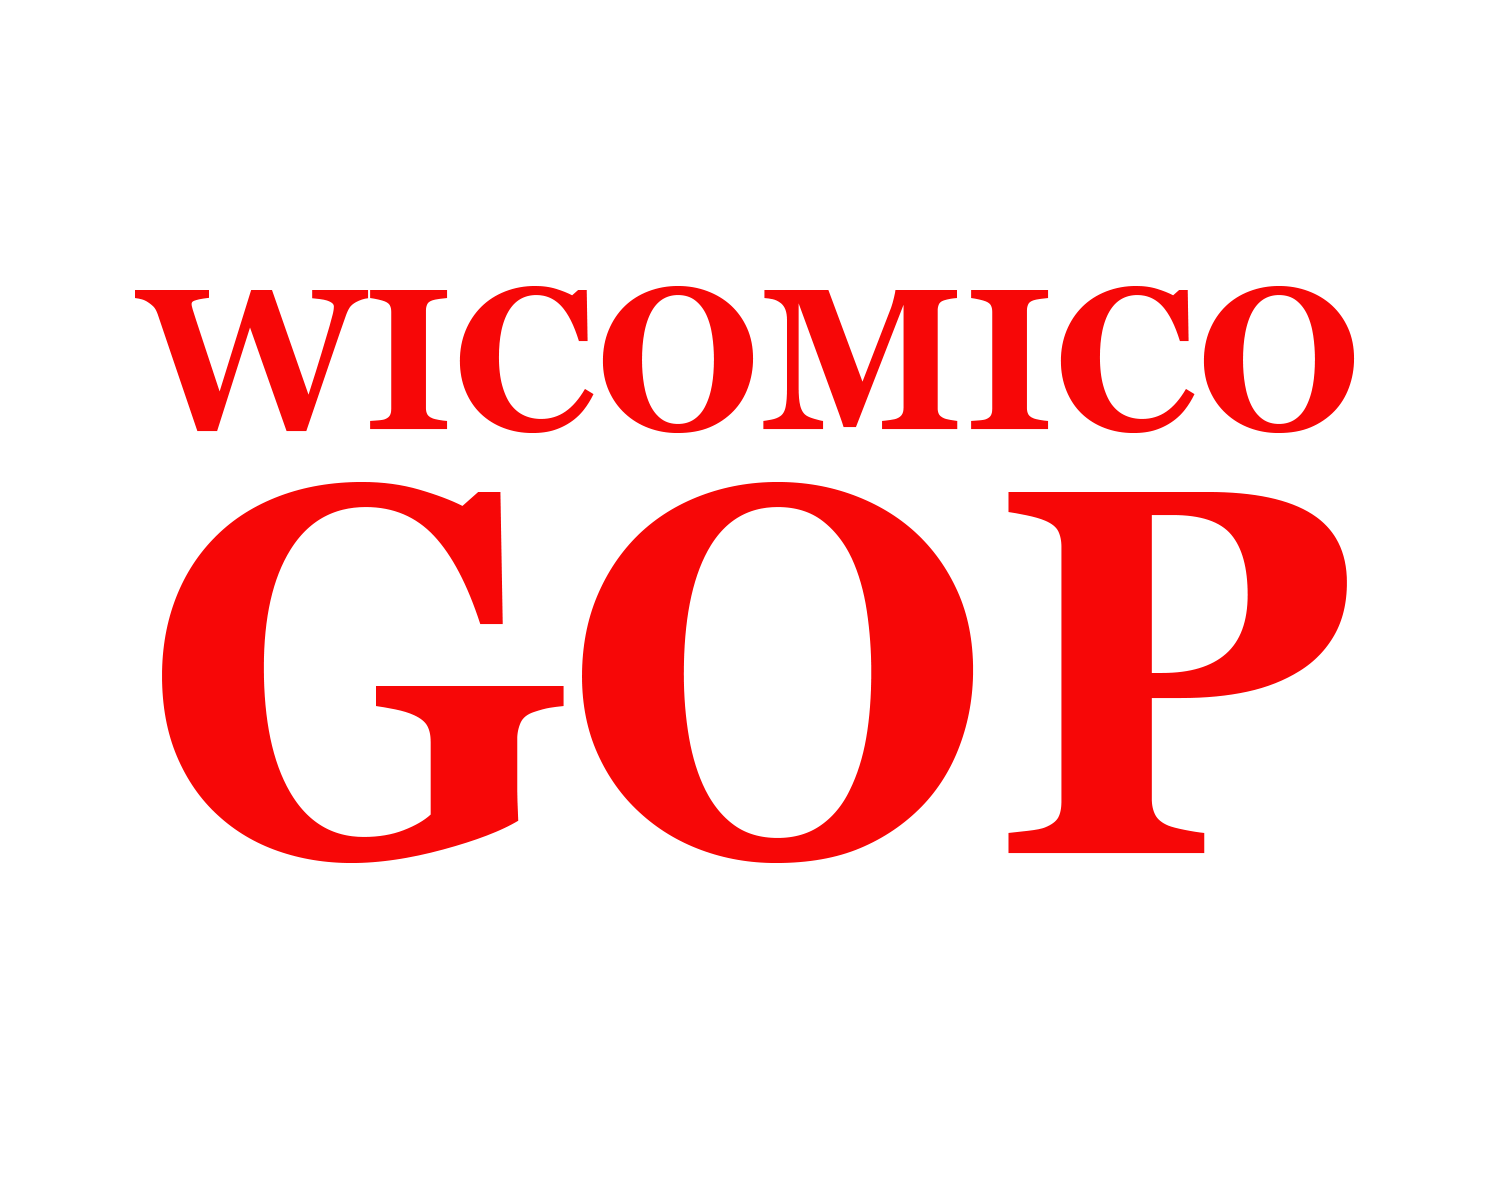 Wicomico County Republican Central Committee